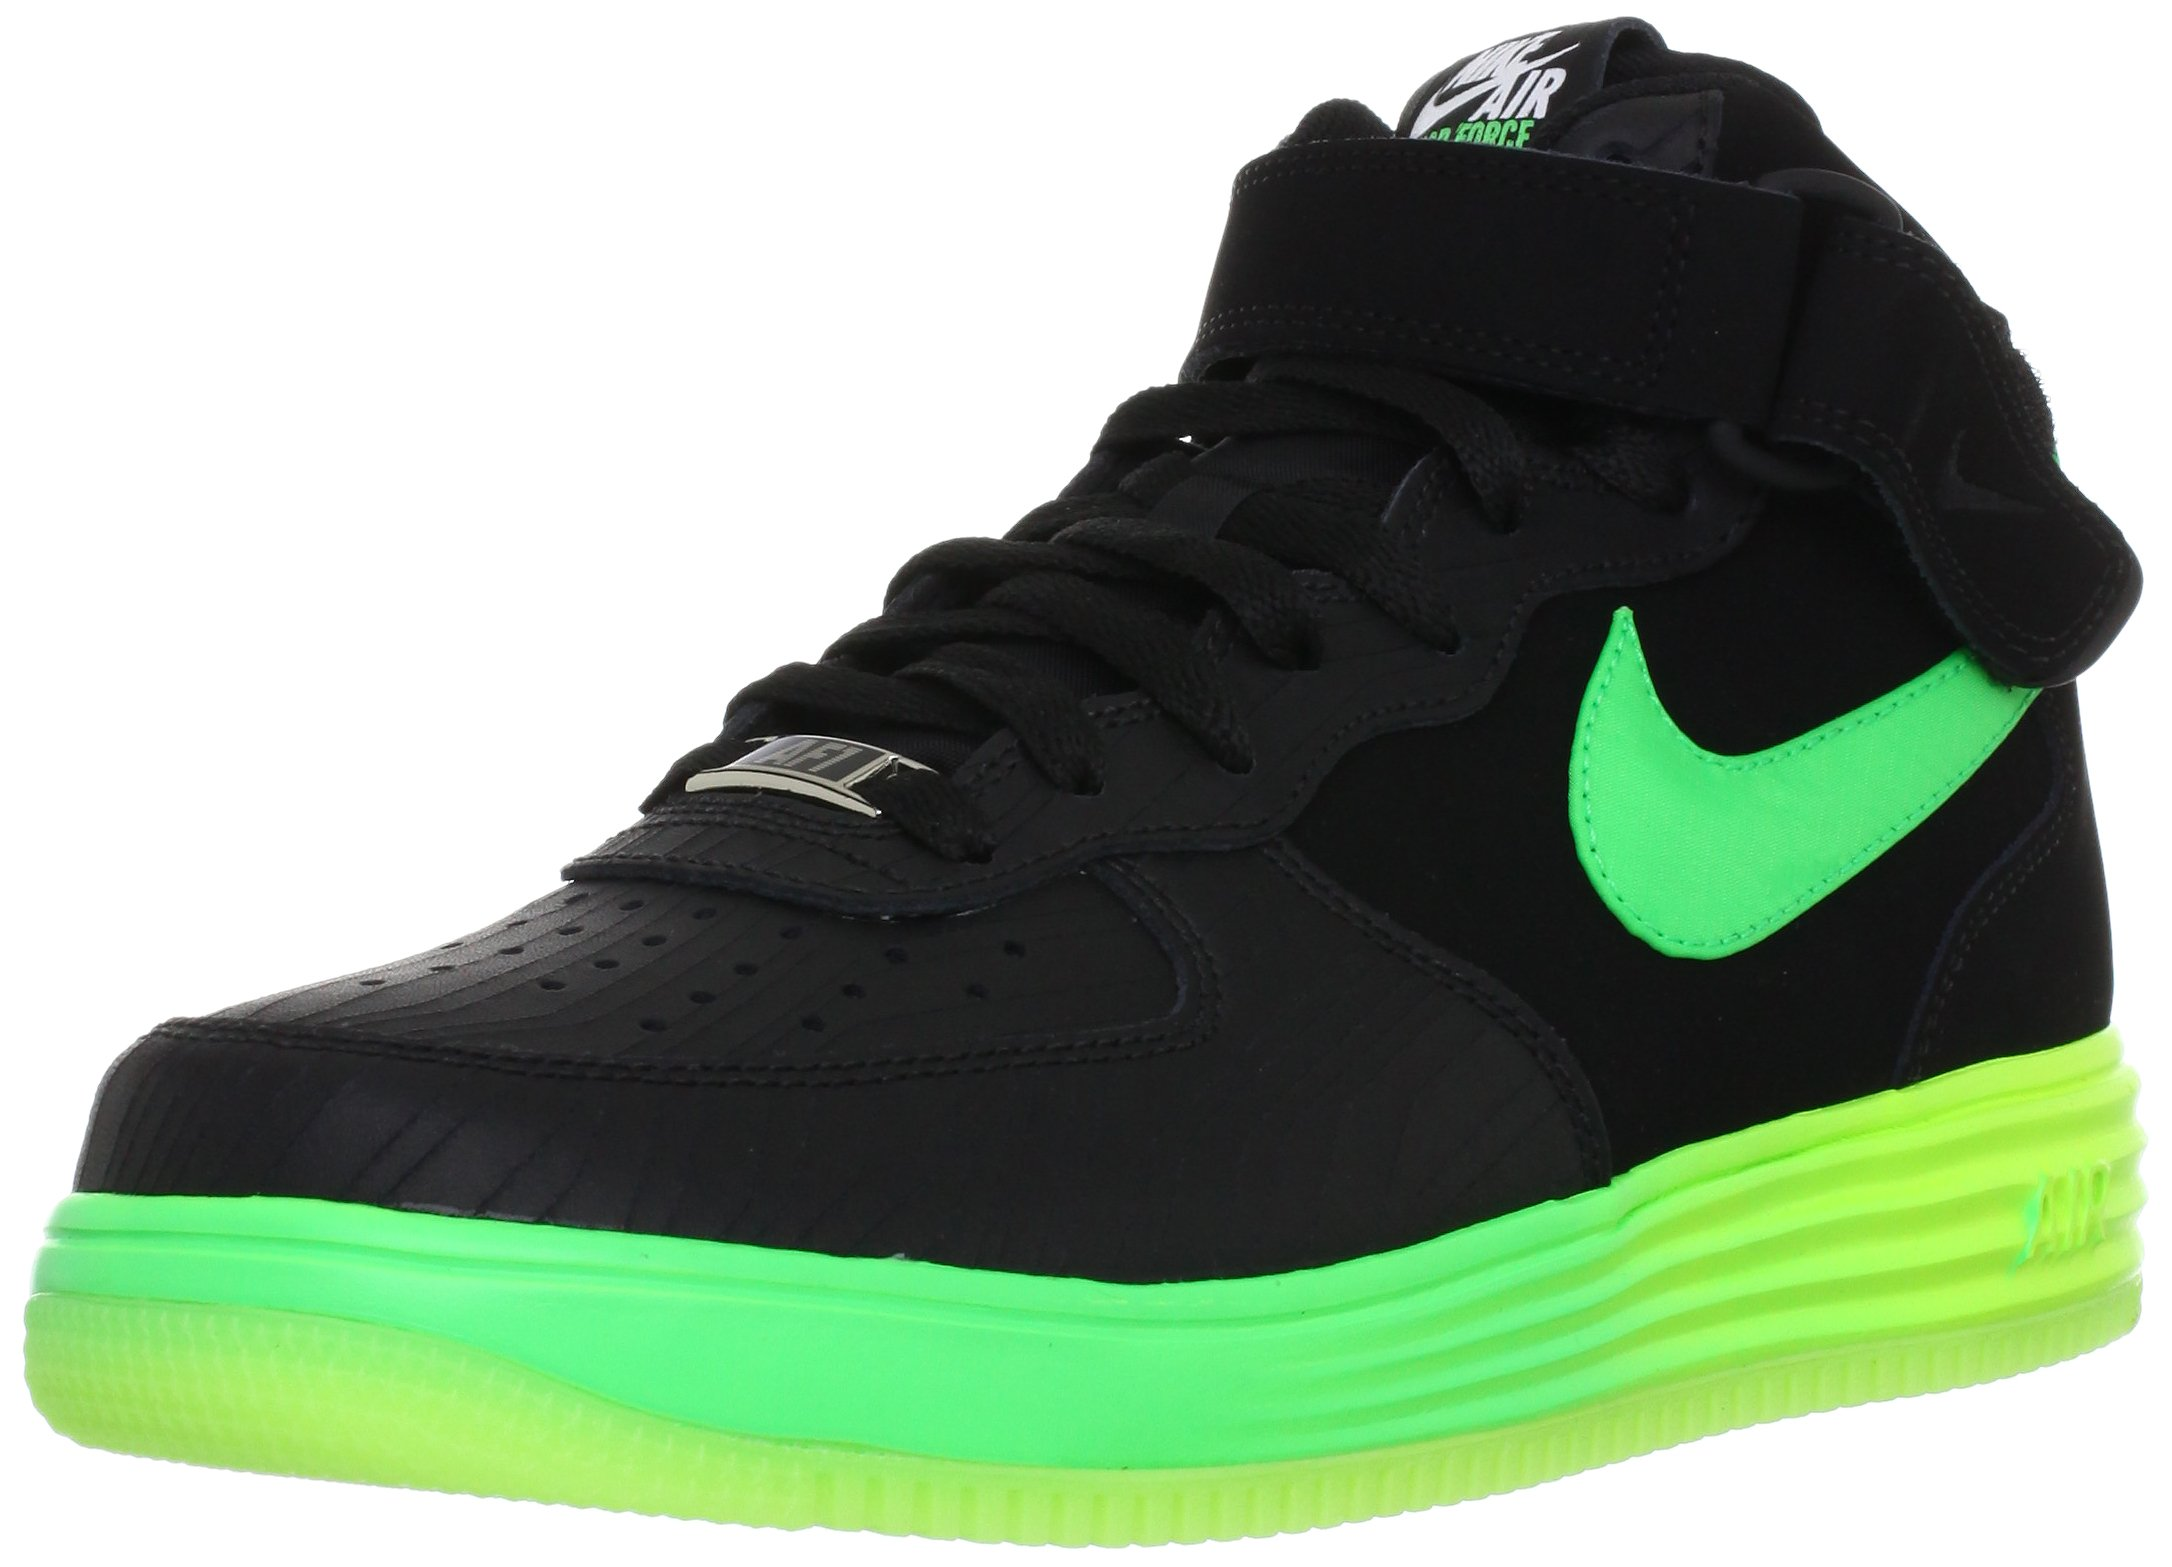 Nike Men's Lunar Force 1 Basketball Shoe Color: Black / Poison Green-Voltage